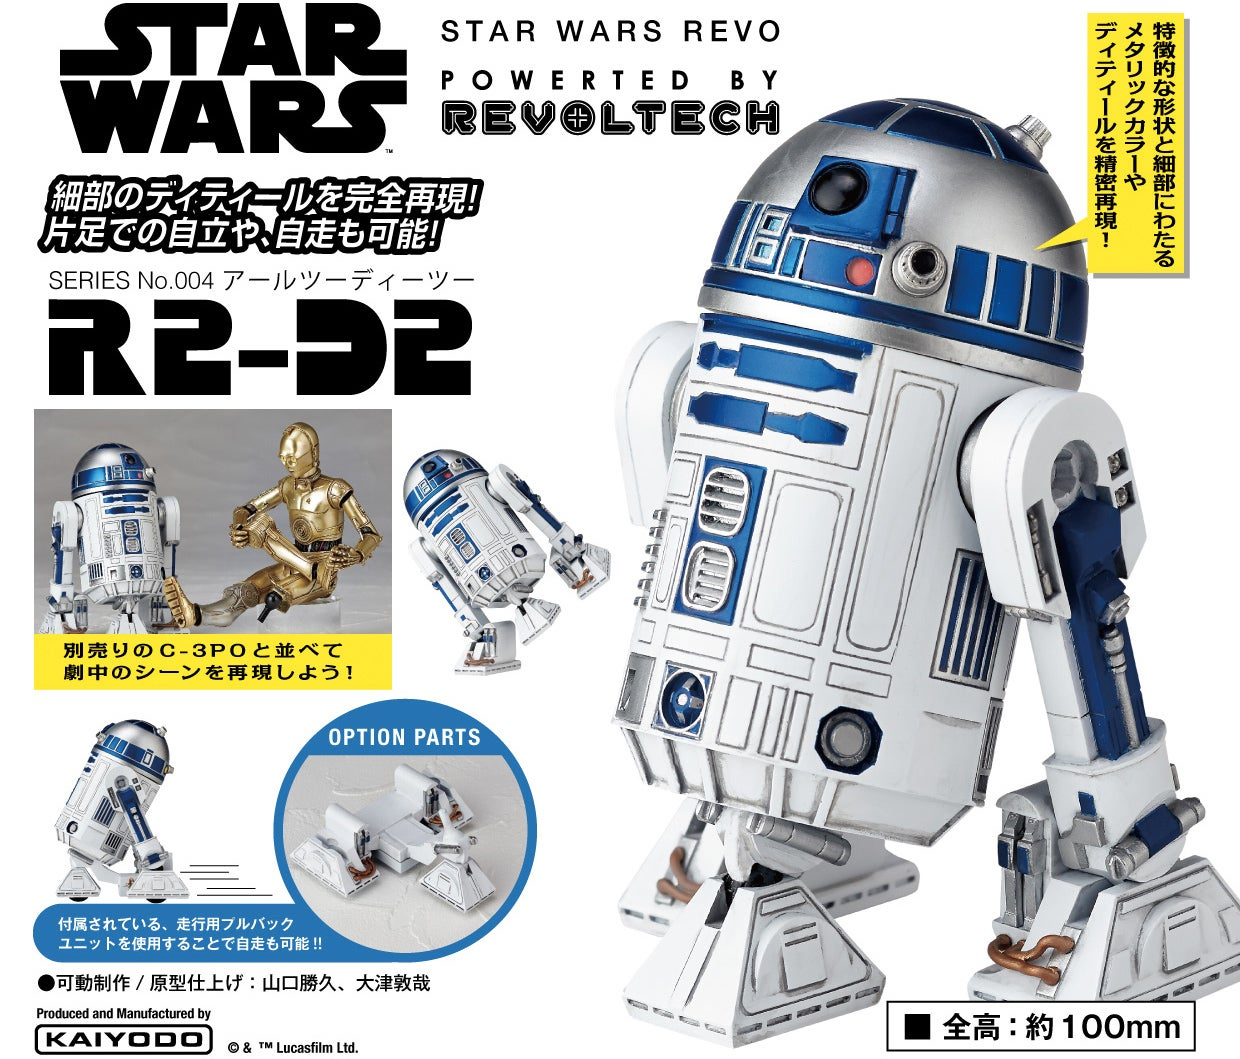 This R2-D2 Figure Is So Articulated It Could Probably Teach Yoga